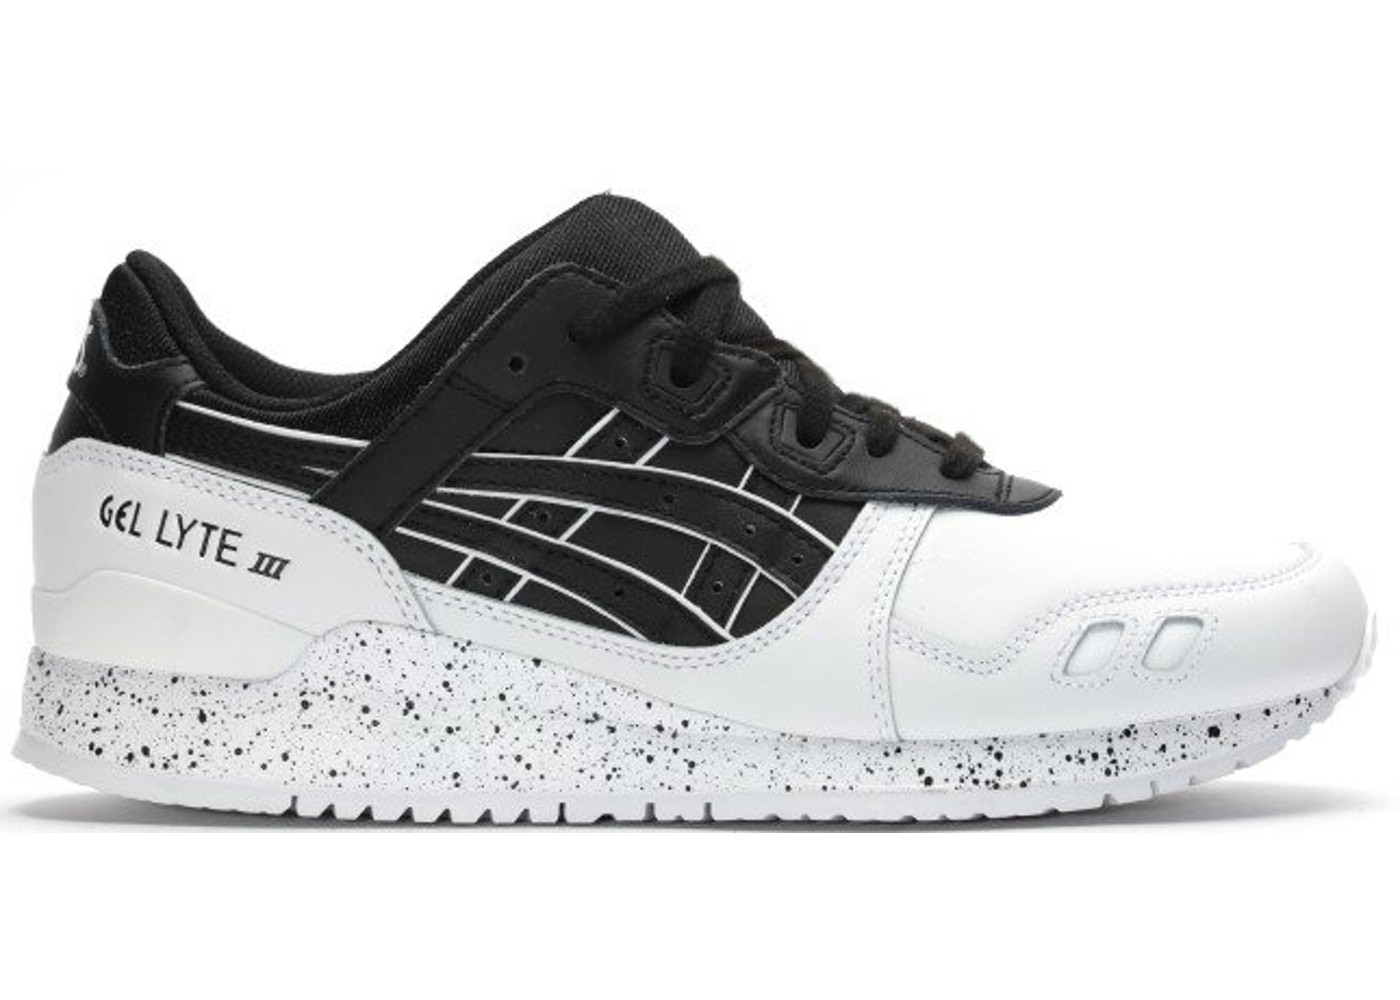 a019c5a99 Sell. or Ask. Size 9. View All Bids. ASICS Gel-Lyte III Oreo Pack Black